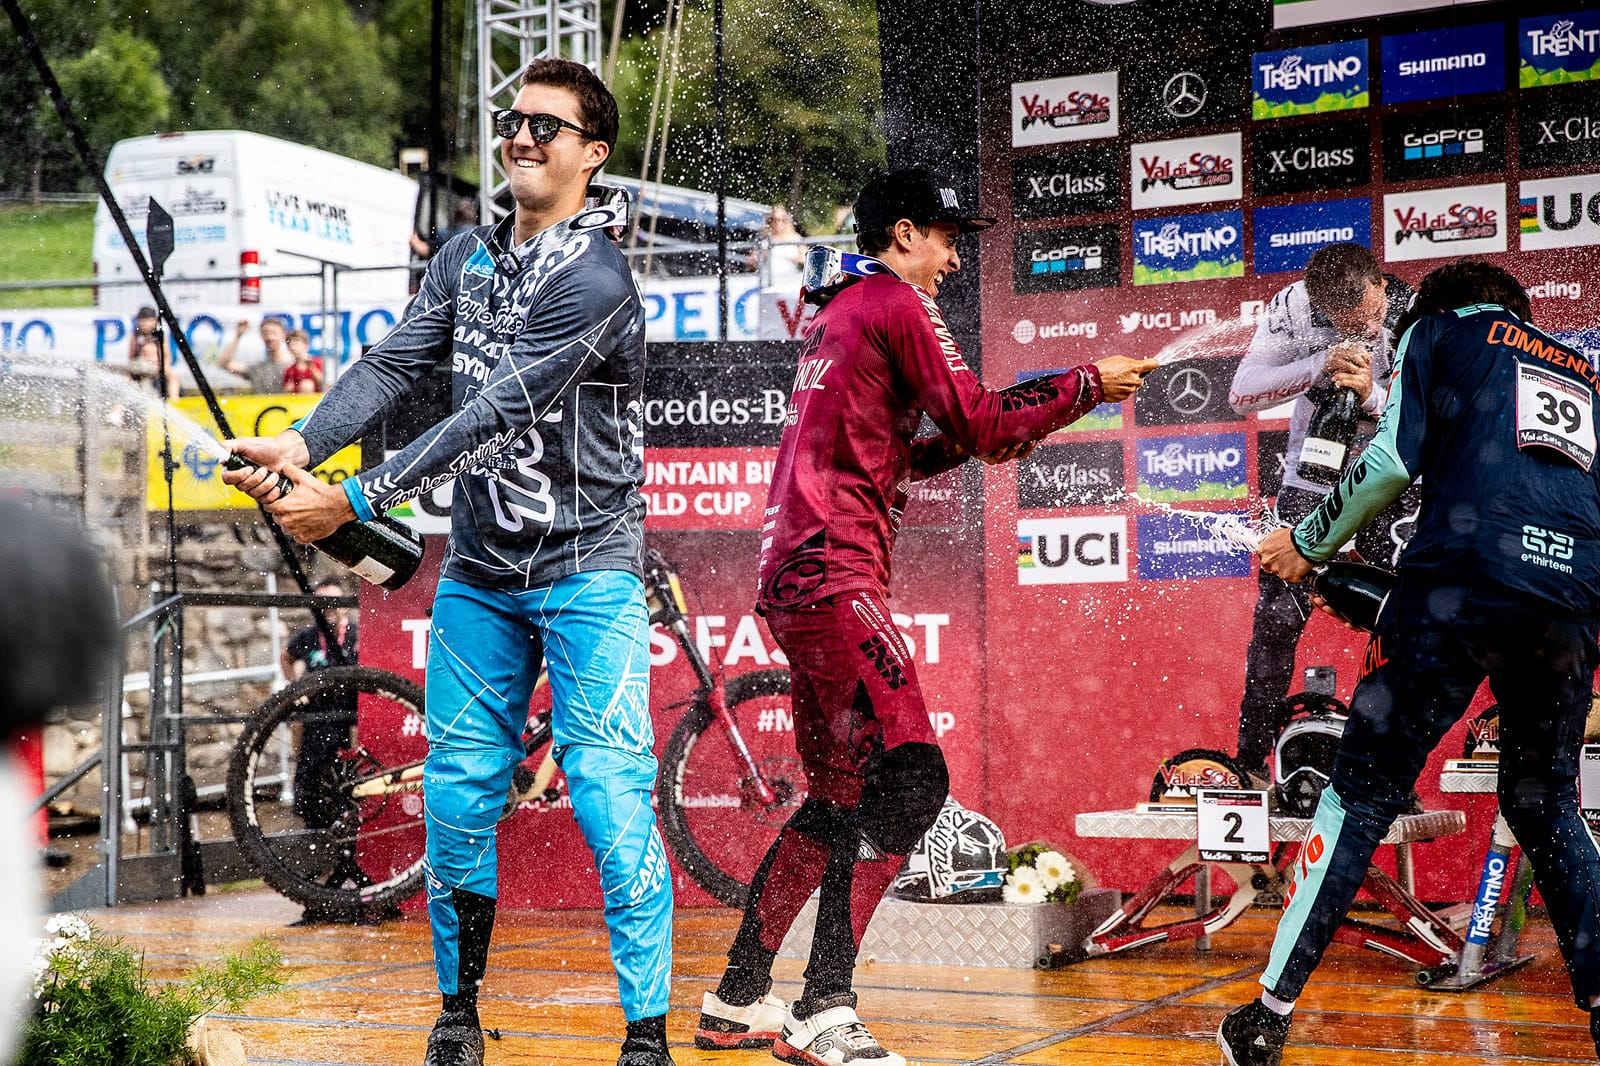 Santa Cruz Bicycles - The Syndicate at Val di Sole World Cup DH - Luca Shaw